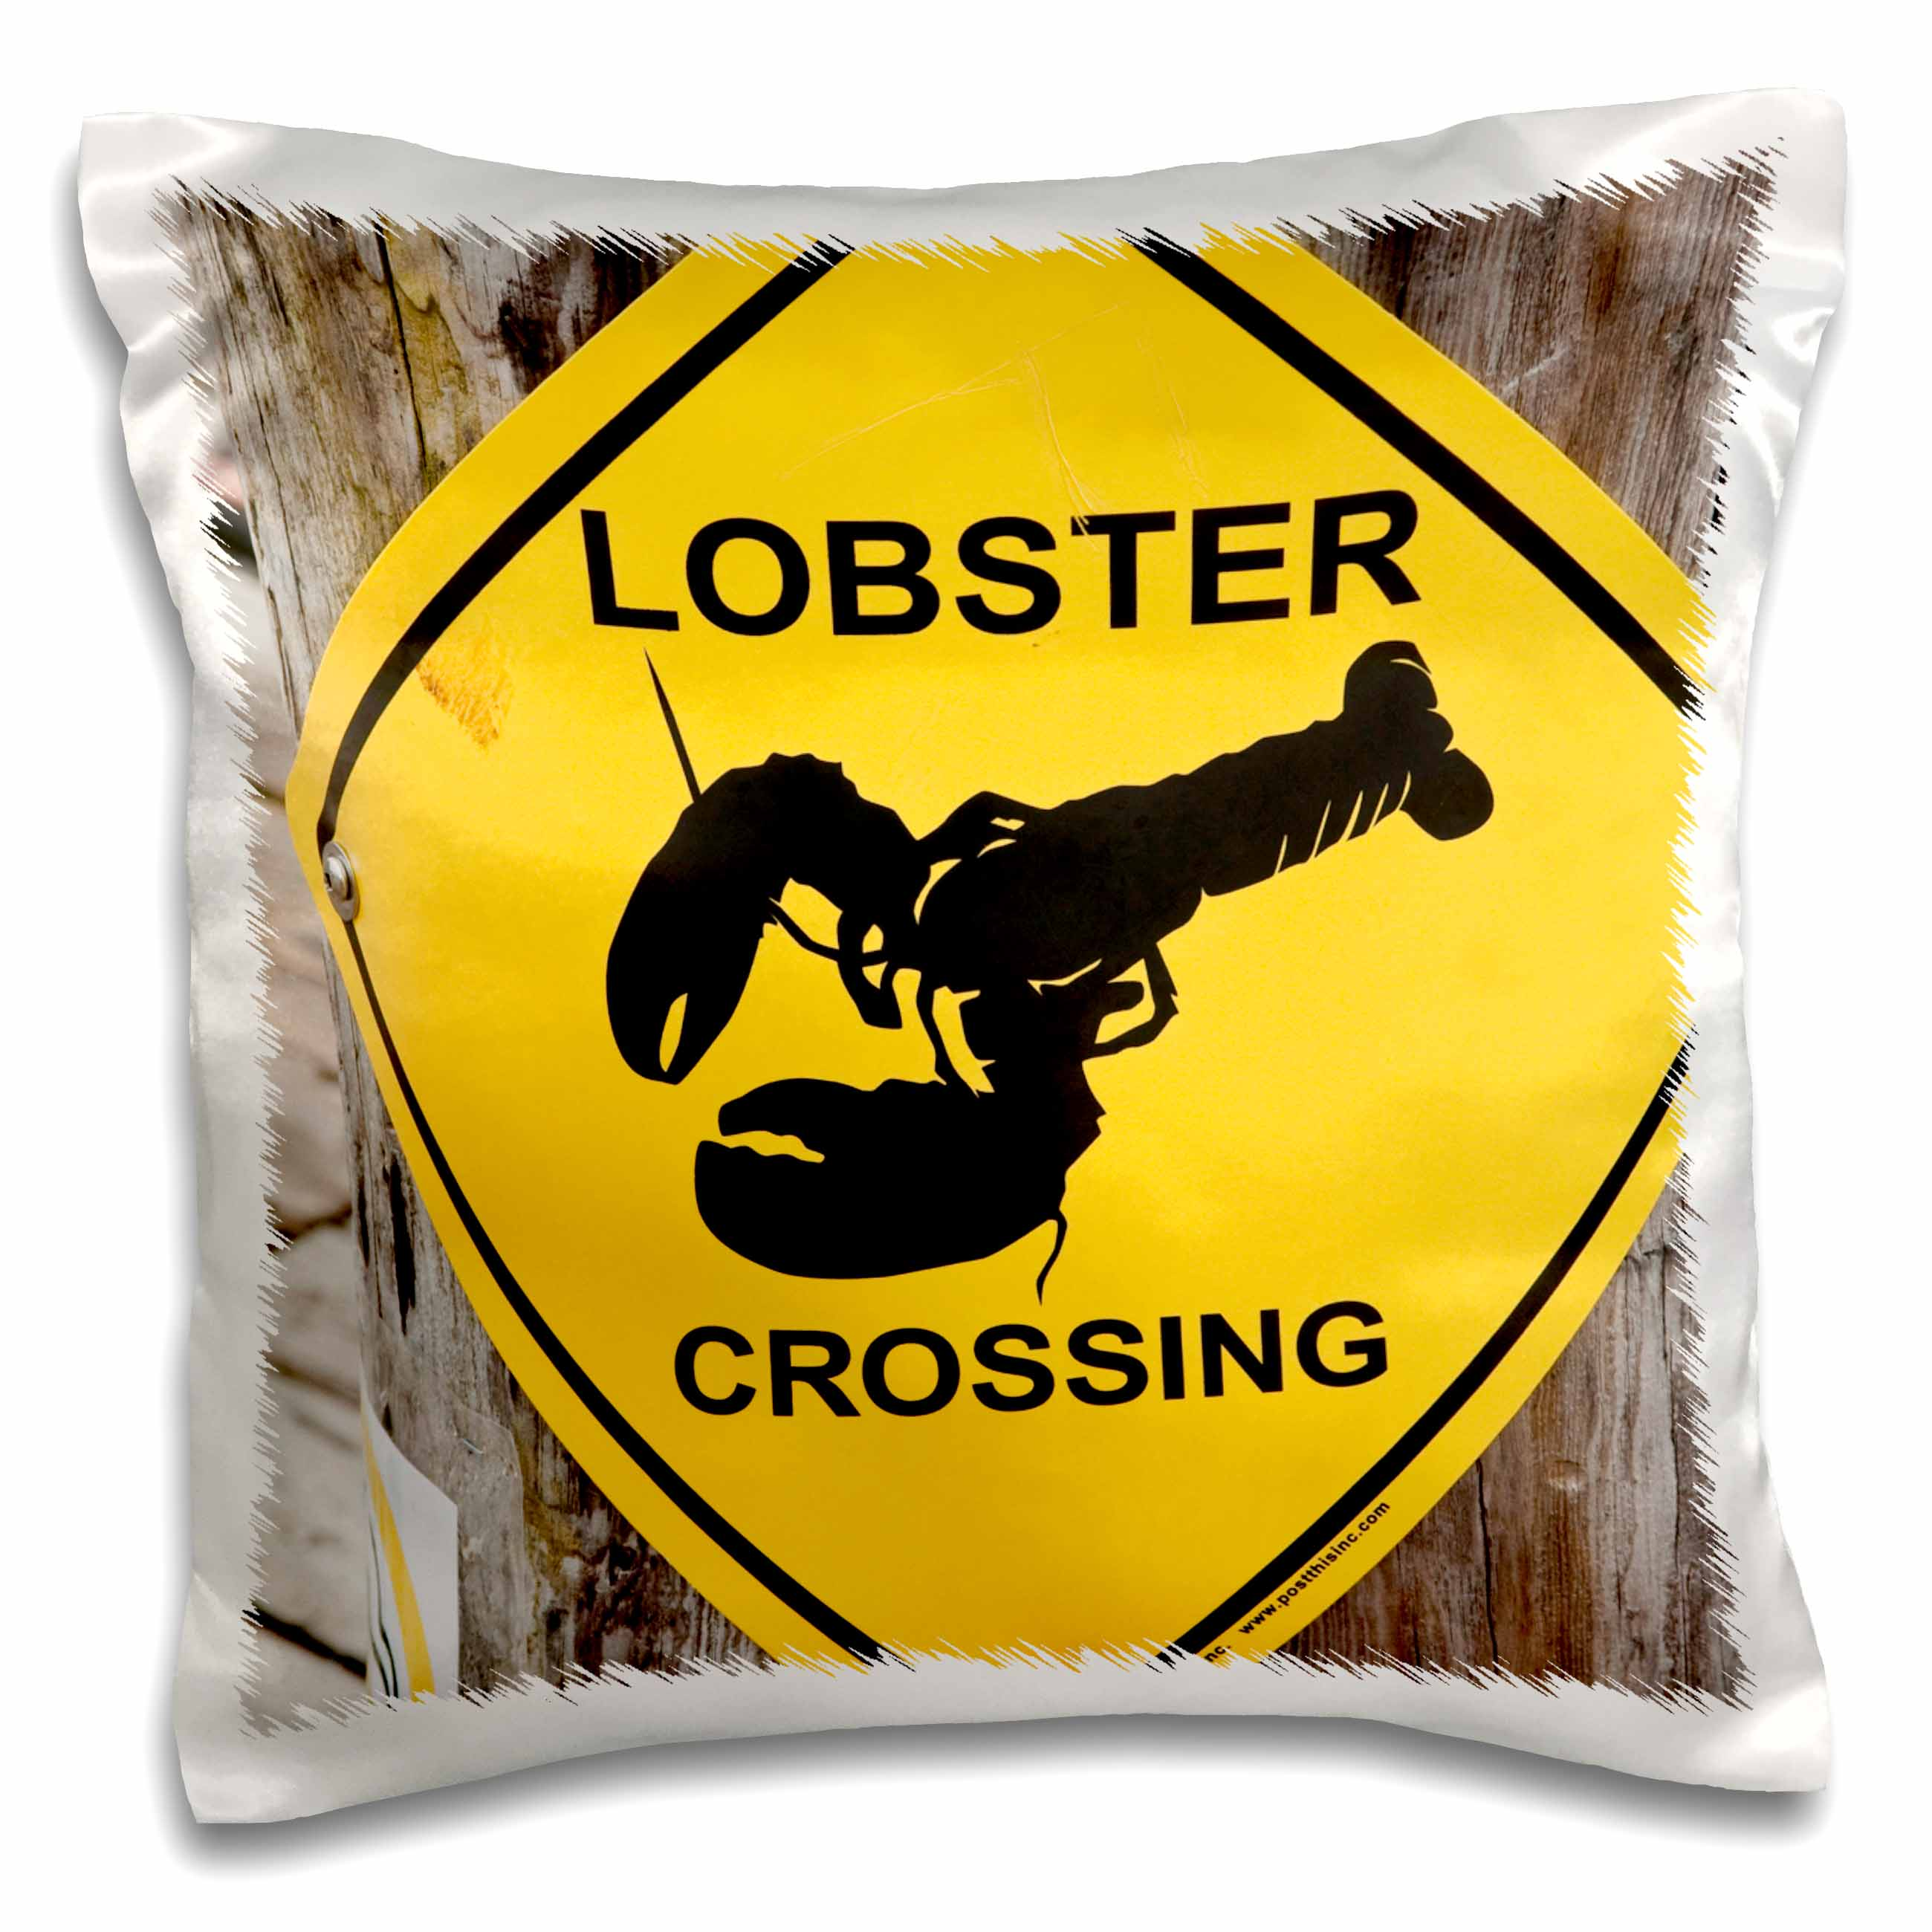 3dRose Nova Scotia, Canada. Lobster sign Lunenburg.-CN07 MDE0050 - Michael DeFreitas, Pillow Case, 16 by 16-inch